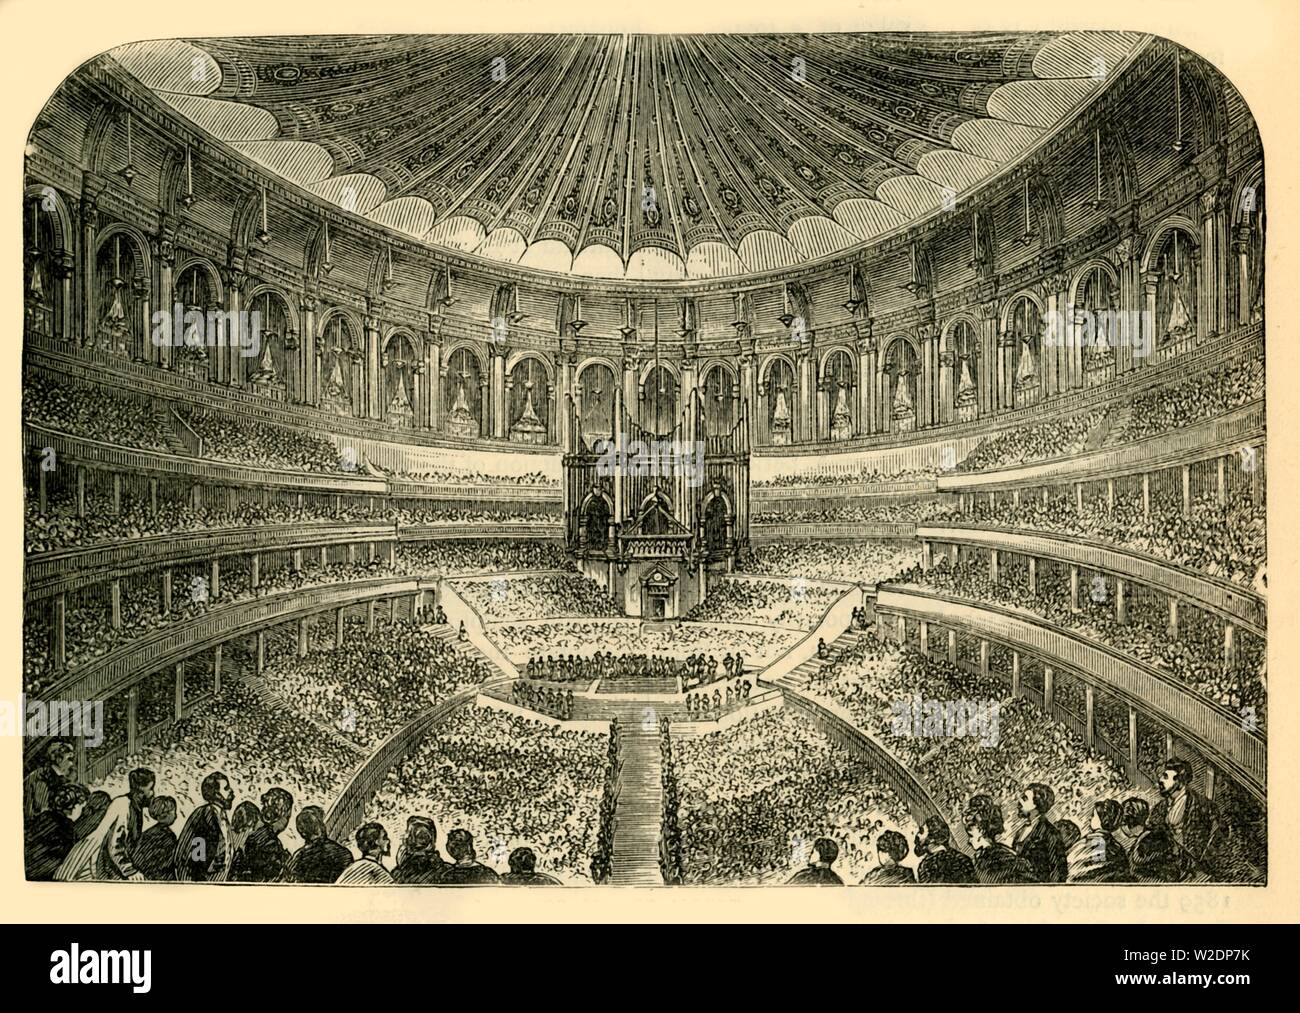 """'Interior of the Albert Hall', c1876. Royal Albert Hall is a concert hall in South Kensington, designed by civil engineers Francis Fowke and Henry Y. D. Scott, opened by by Queen Victoria in 1871 who laid the foundation stone in 1867, in memory of her husband, Prince Albert. From """"Old and New London: A Narrative of Its History, Its People, and Its Places. The Western and Northern Studies"""", by Edward Walford. [Cassell, Petter, Galpin & Co., London, Paris & New York] - Stock Image"""